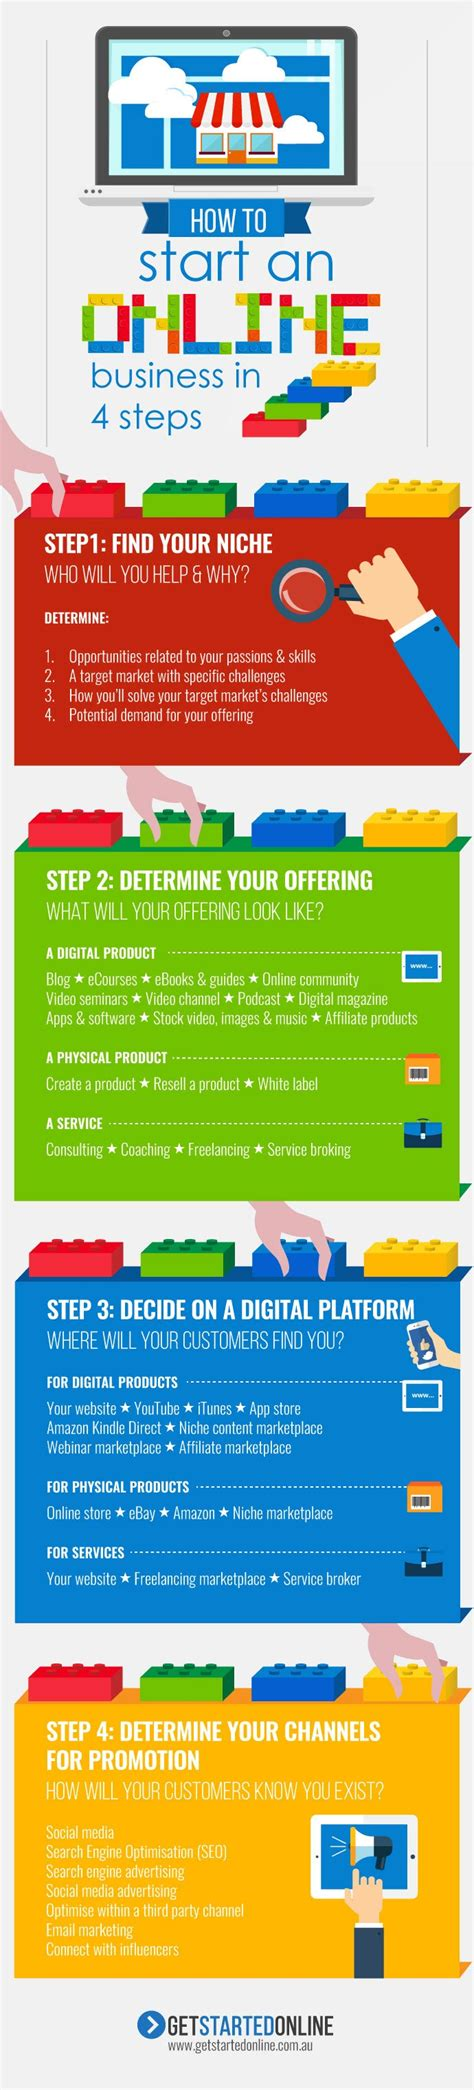 How To Start An Online Business In 4 Steps [infographic]. Host Based Intrusion Detection. What Is The Cheapest Cable A Website Designed. Personal Interest Rates Best Blog Web Hosting. Dentist Port Richey Fl Medical Advantage Plan. Assisted Living In Northern Virginia. Mortgage Rates For Second Home. How To Calculate A Home Mortgage. Building A Catapult For School Project